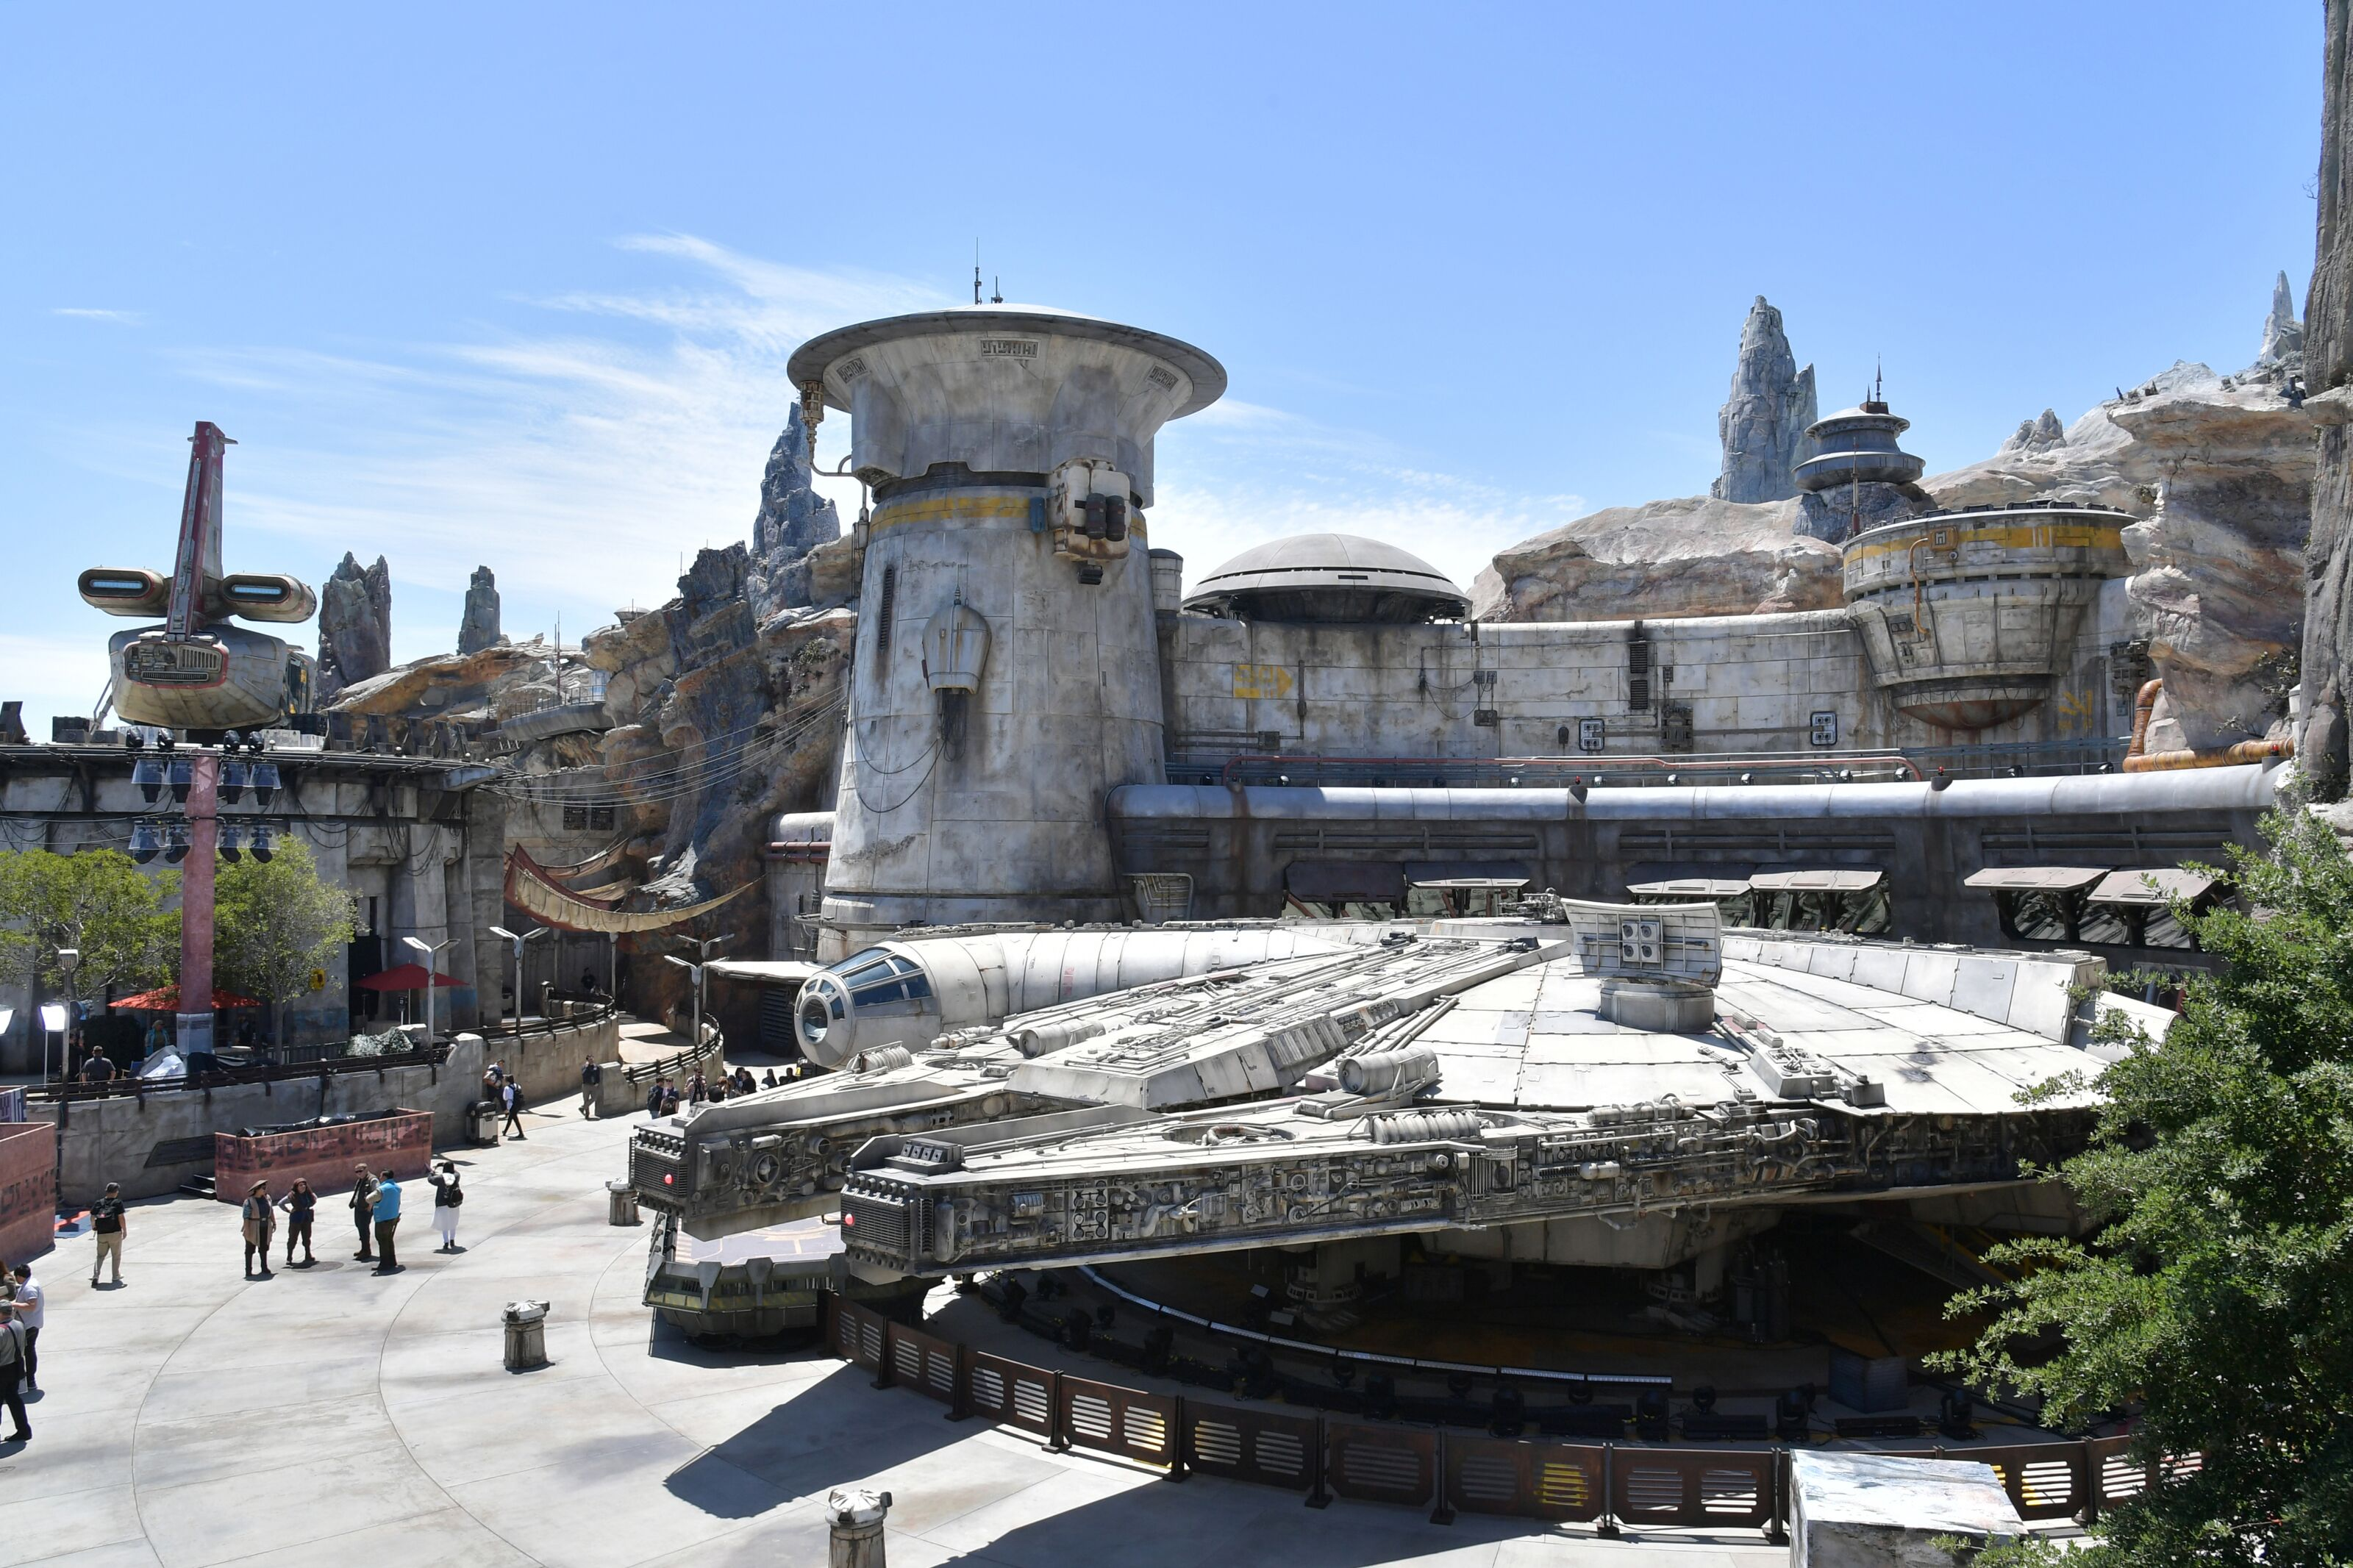 Star Wars: 5 Galaxy's Edge highlights for original trilogy fans